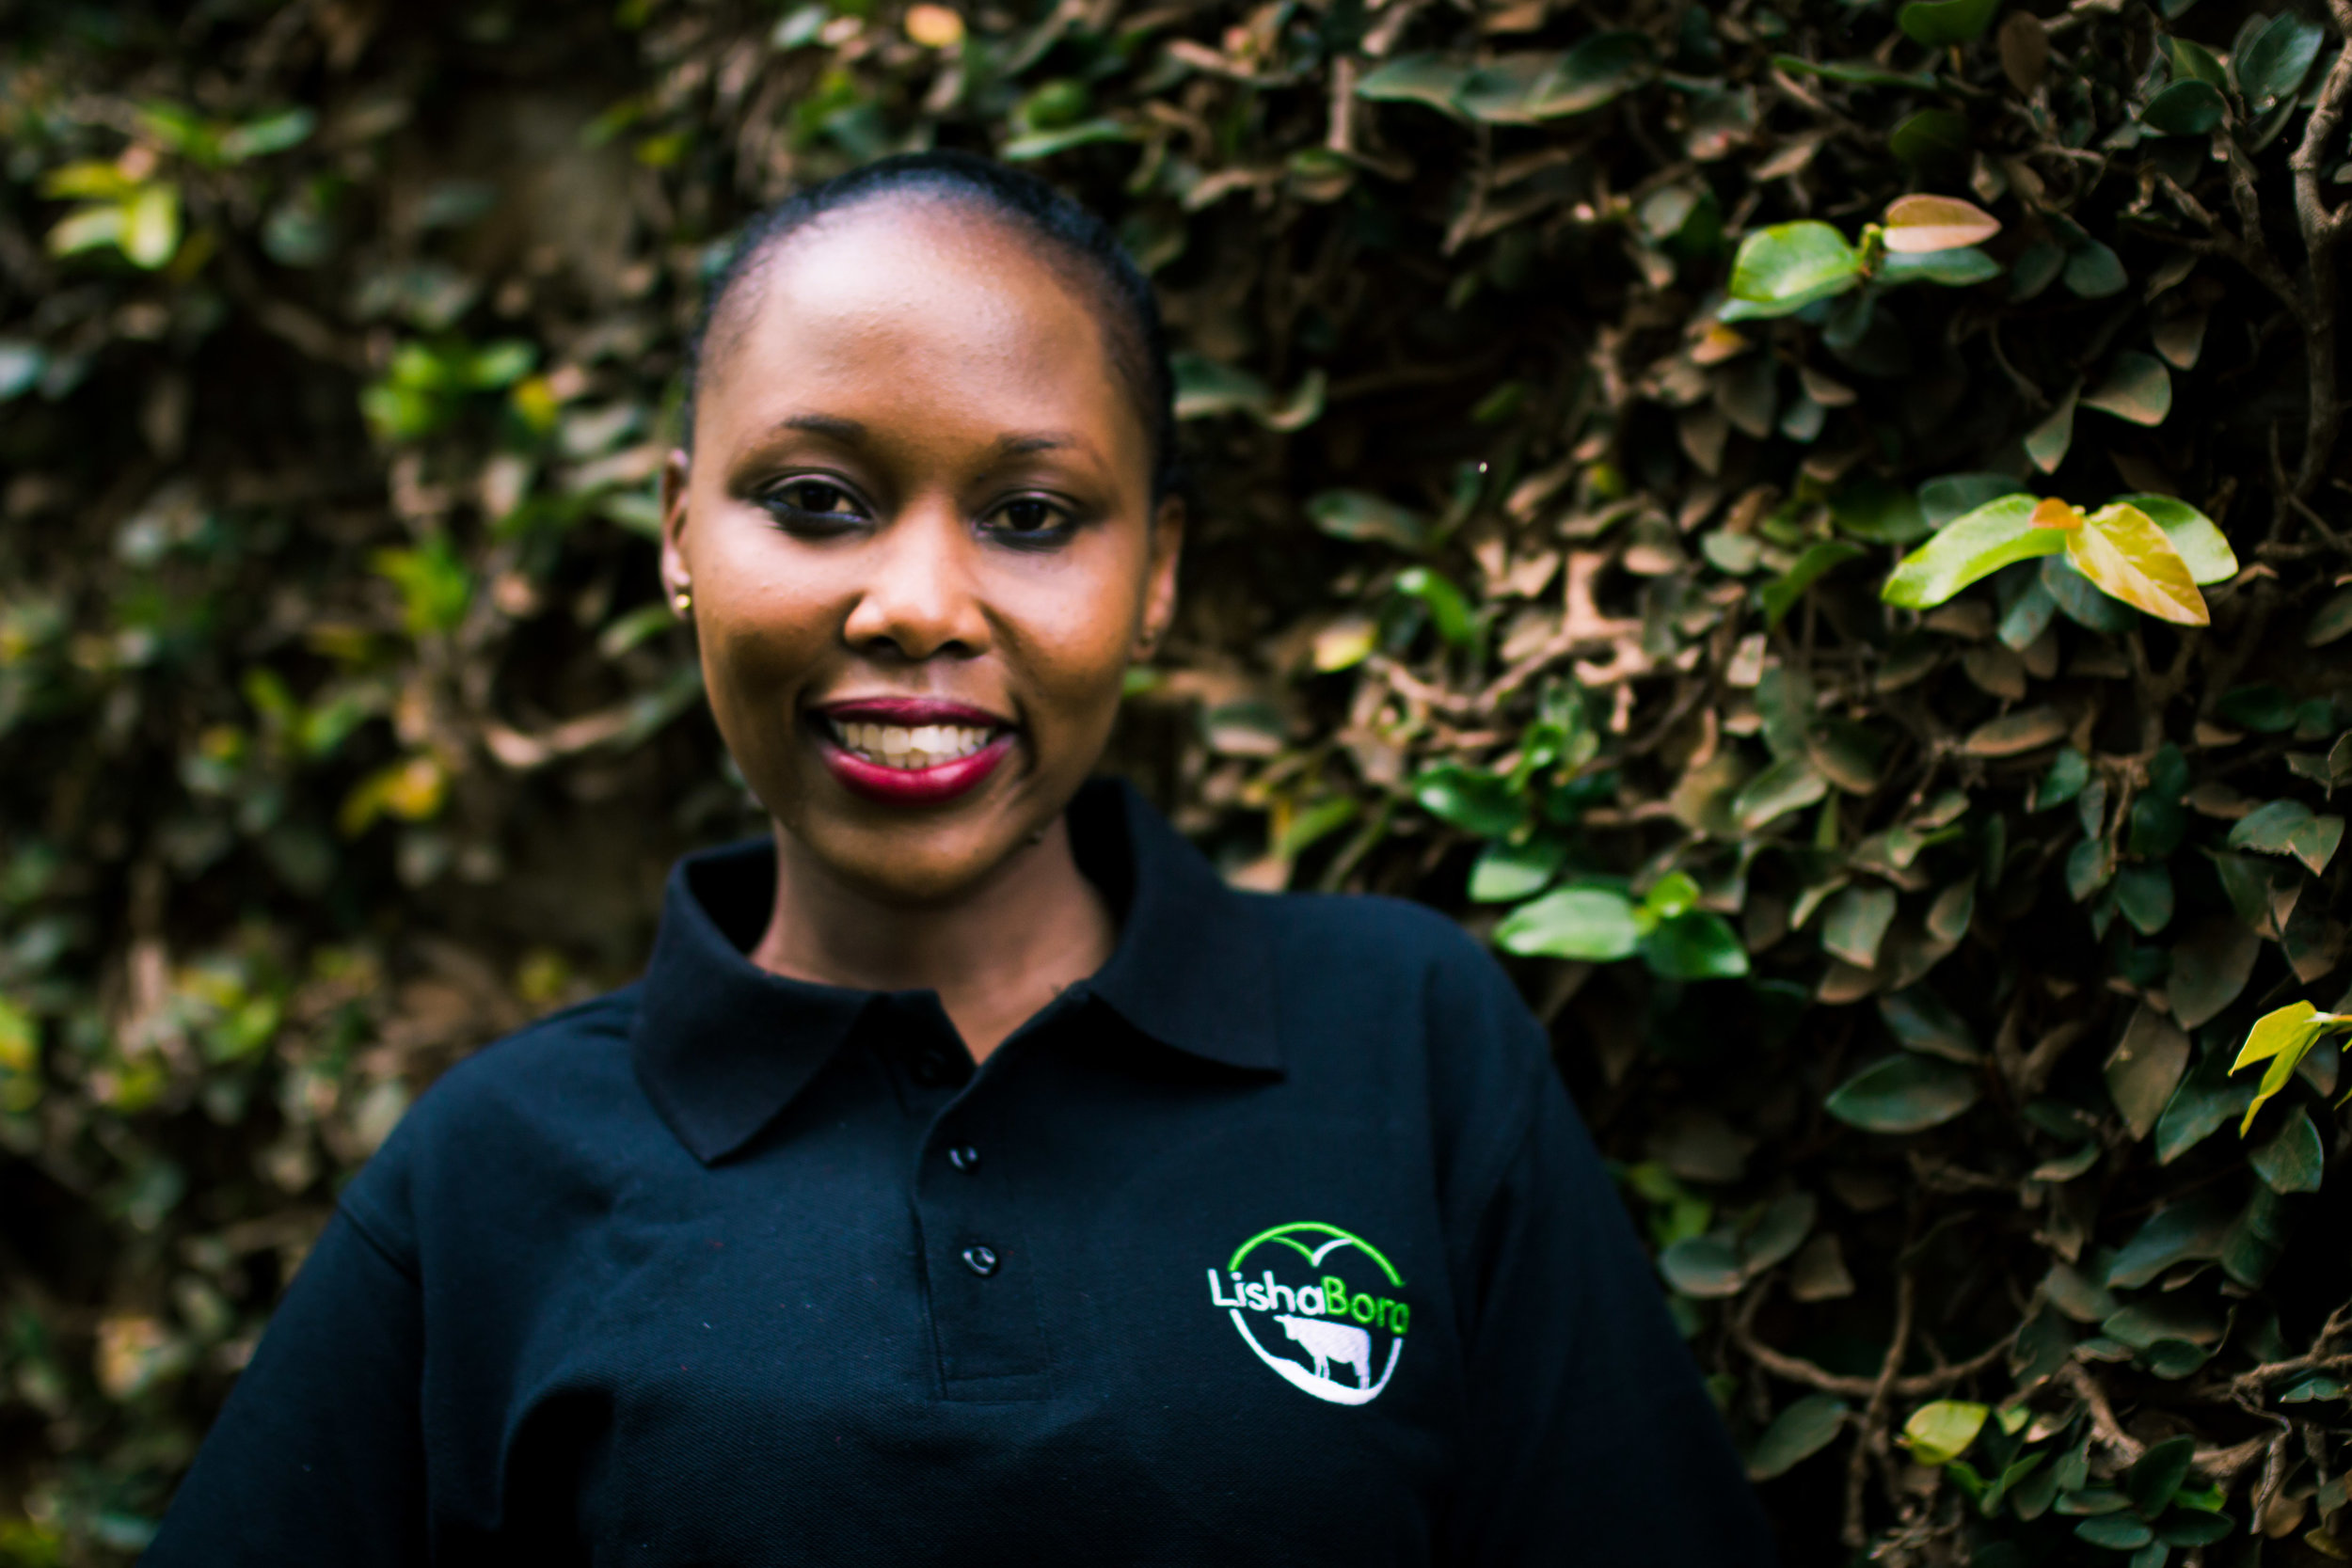 VALERIE WATHIONG'O   Customer Relations Director   Valerie is an ambitious and compassionate person who builds strong relationships with LishaBora's customers to help them achieve their life goals. She holds a Bachelor's in development studies from Mount Kenya University and is experienced in managing complex projects to drive productivity improvement. She is passionate about helping others and is actively involved in community outreach programmes including capacity building and mentorship. She enjoys networking, socializing with friends and seeking out adventure in nature.